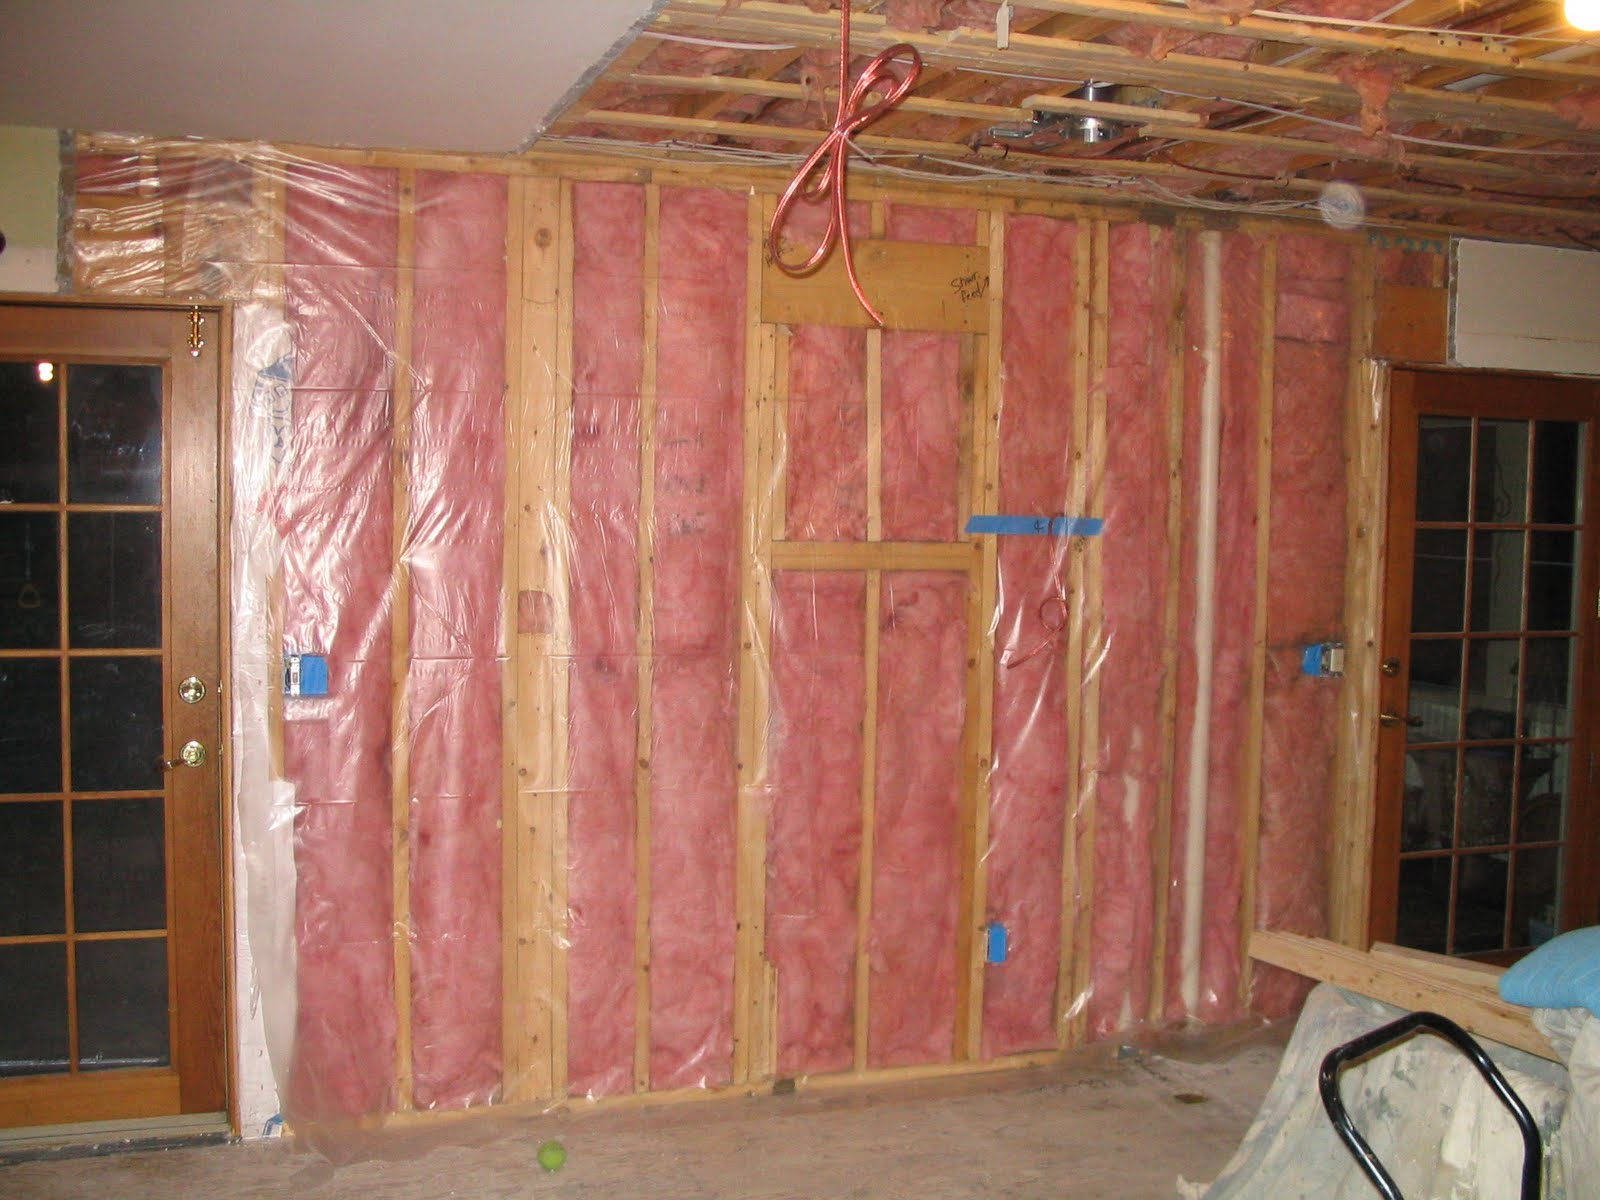 Bathroom Insulation and Ventilation - Page 2 of 6 - A ...